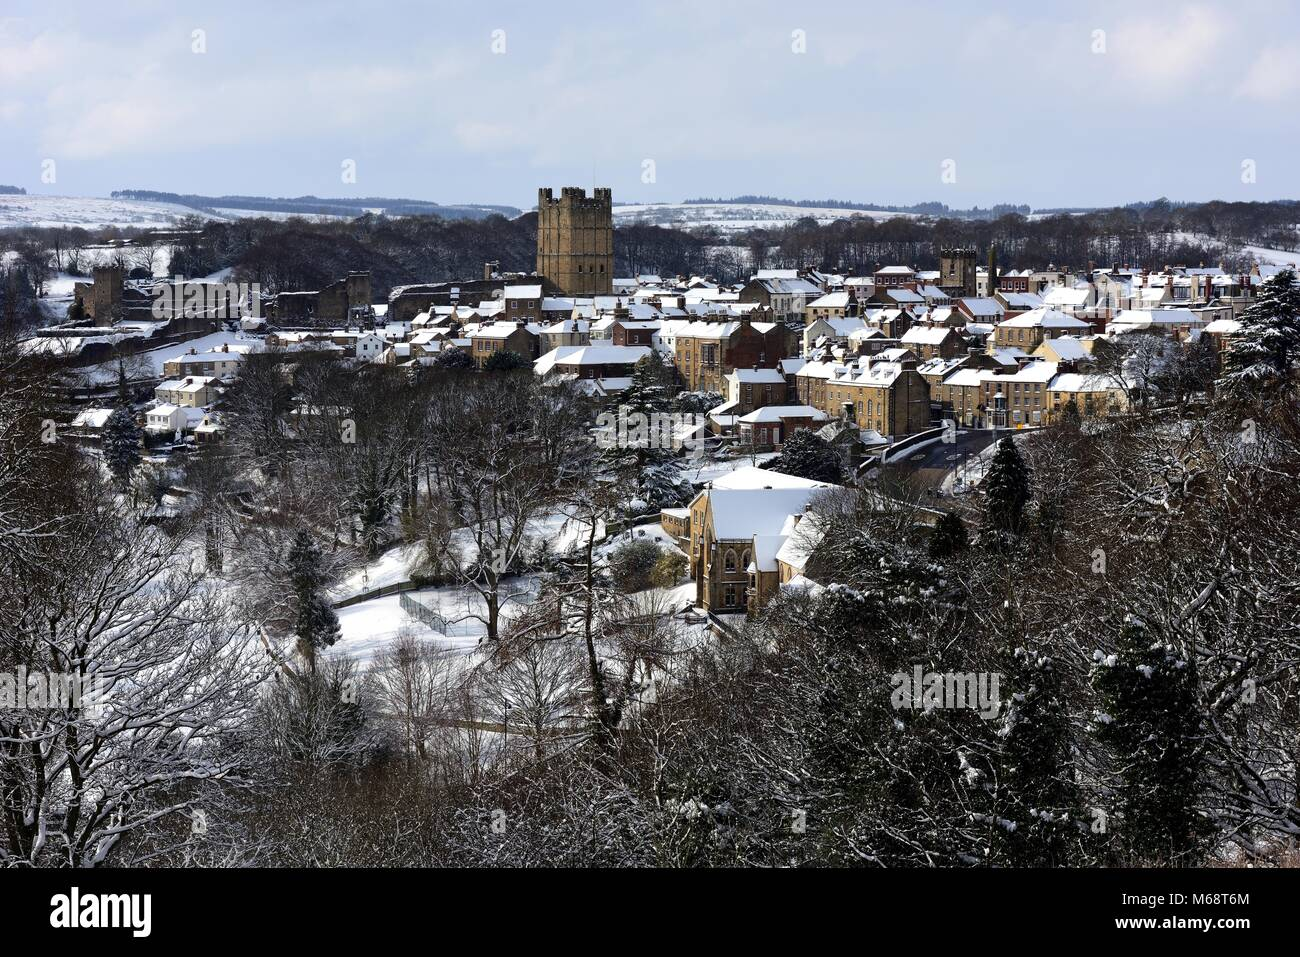 Richmond, Yorkshire,seen from above after snowfall - Stock Image